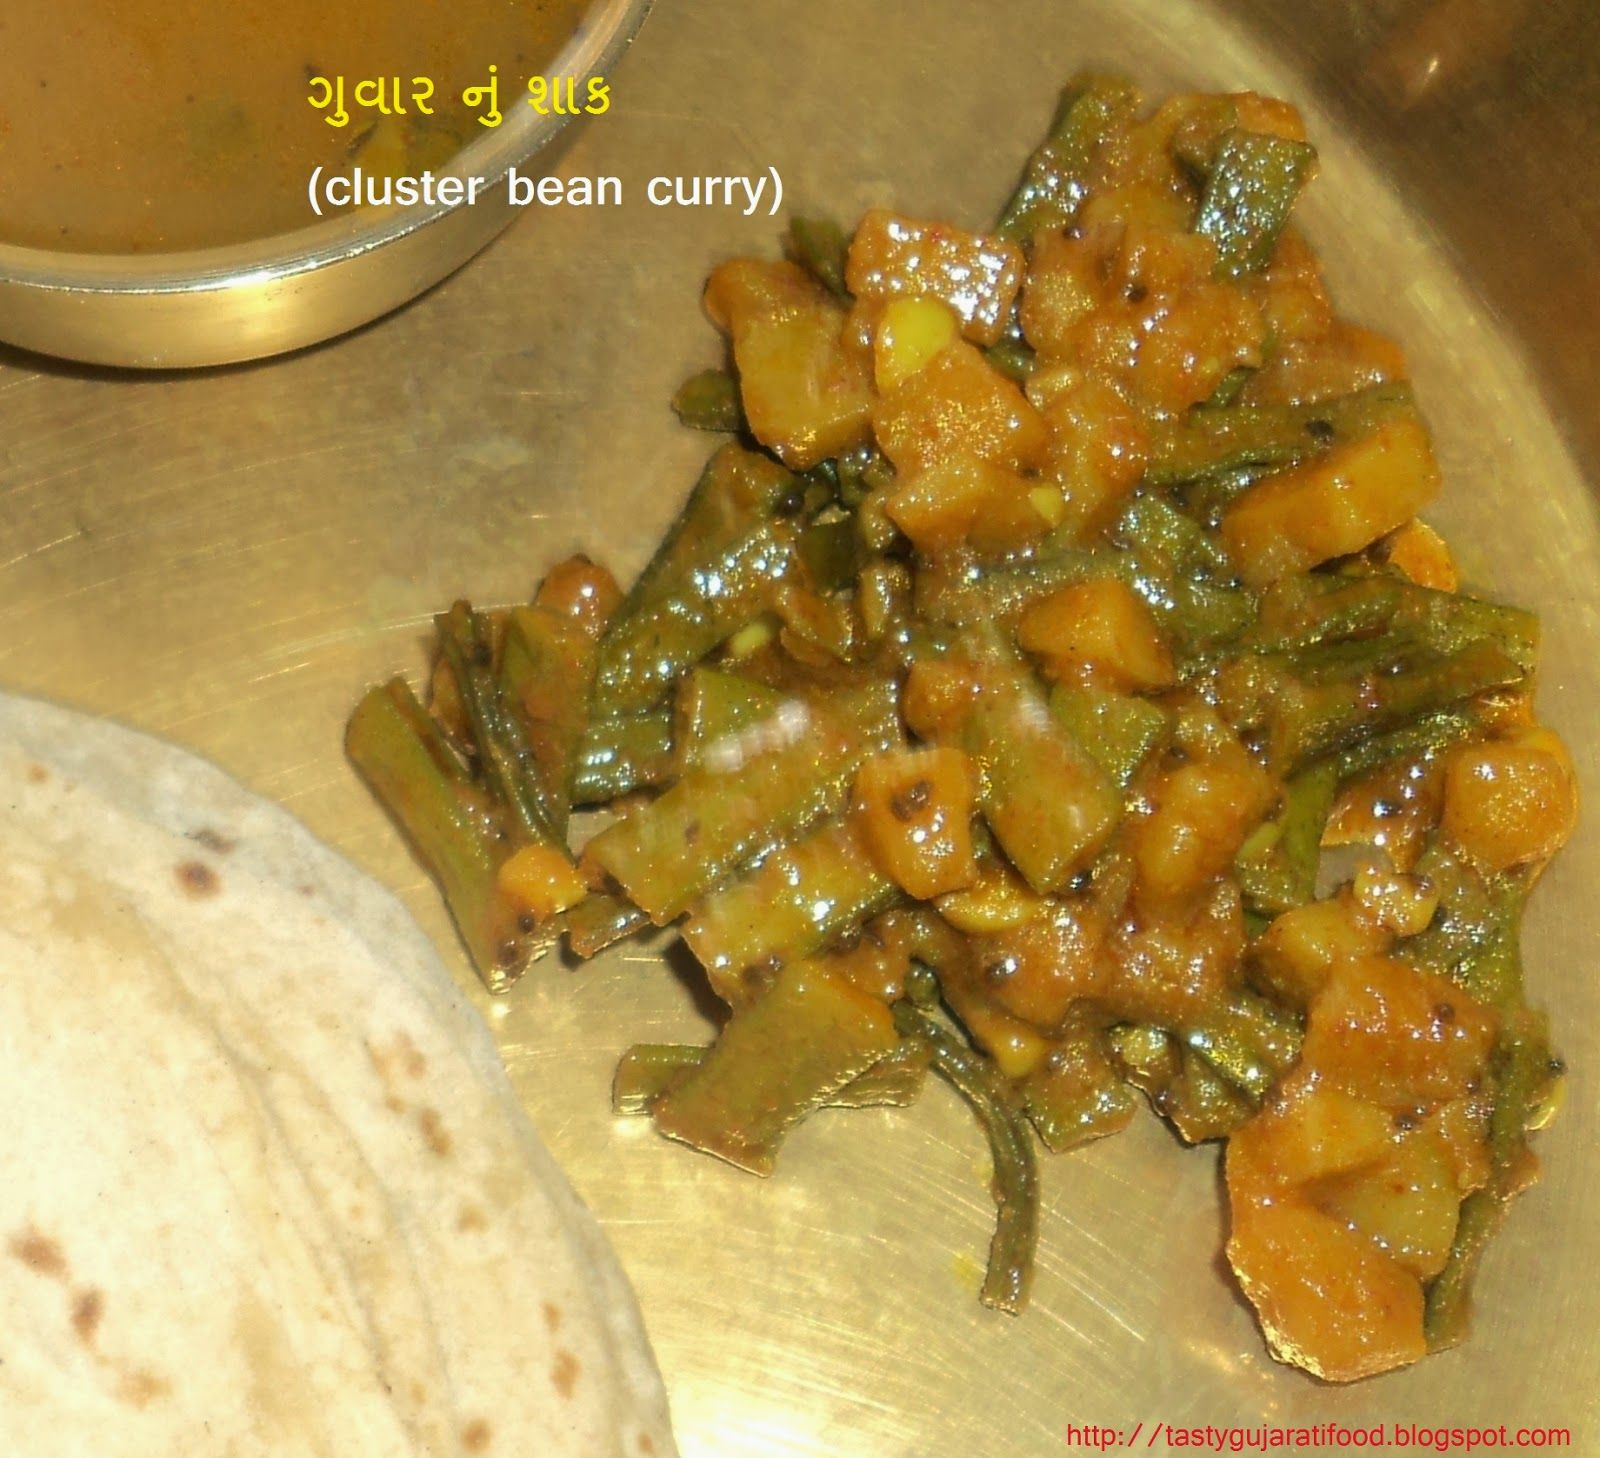 Gujarati food recipes guvar bataka nu shaak sabji pinterest gujarati food recipes guvar bataka nu shaak forumfinder Gallery